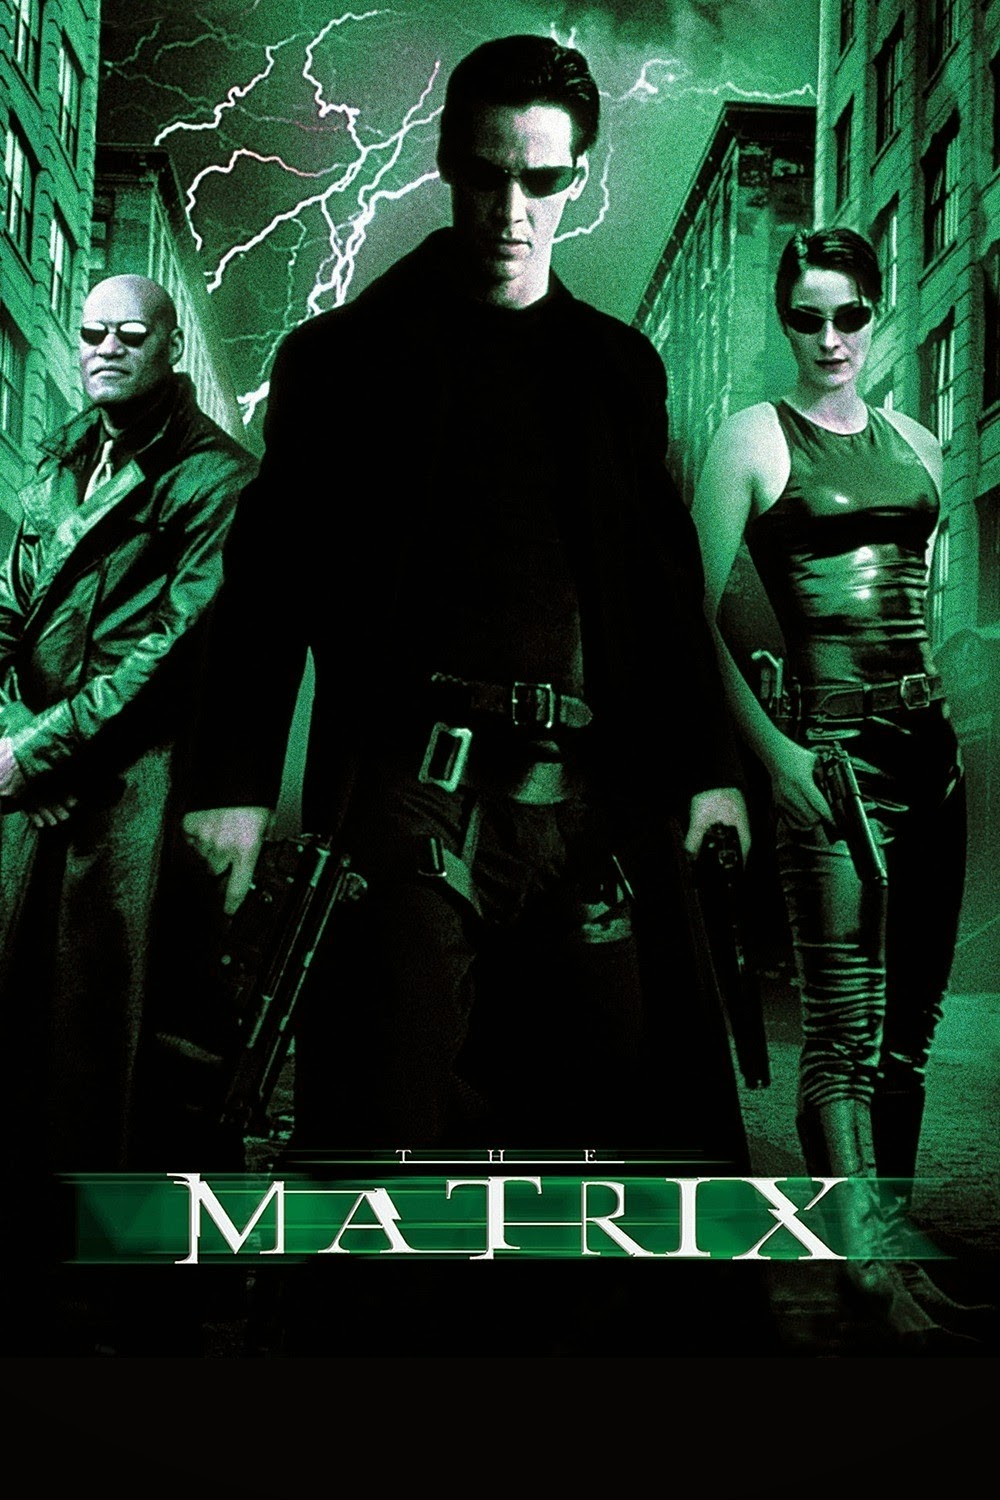 Movies, ΤΑΙΝΙΕΣ, Action, Sci-Fi, Keanu Reeves, Laurence Fishburne, Carrie-Anne Moss, The Matrix,